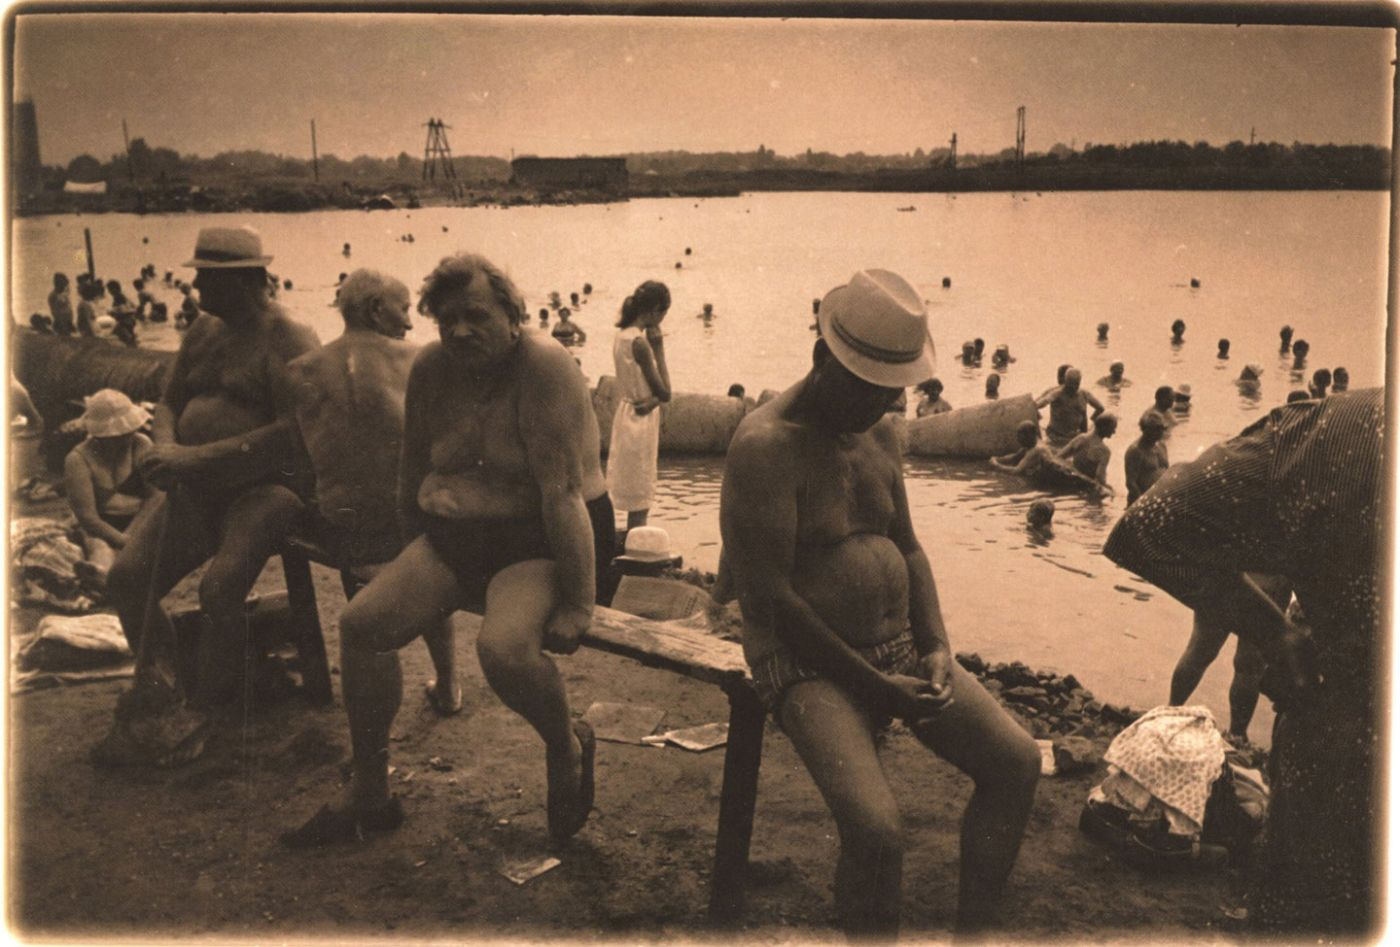 Boris Mikhailov: Salt Lake